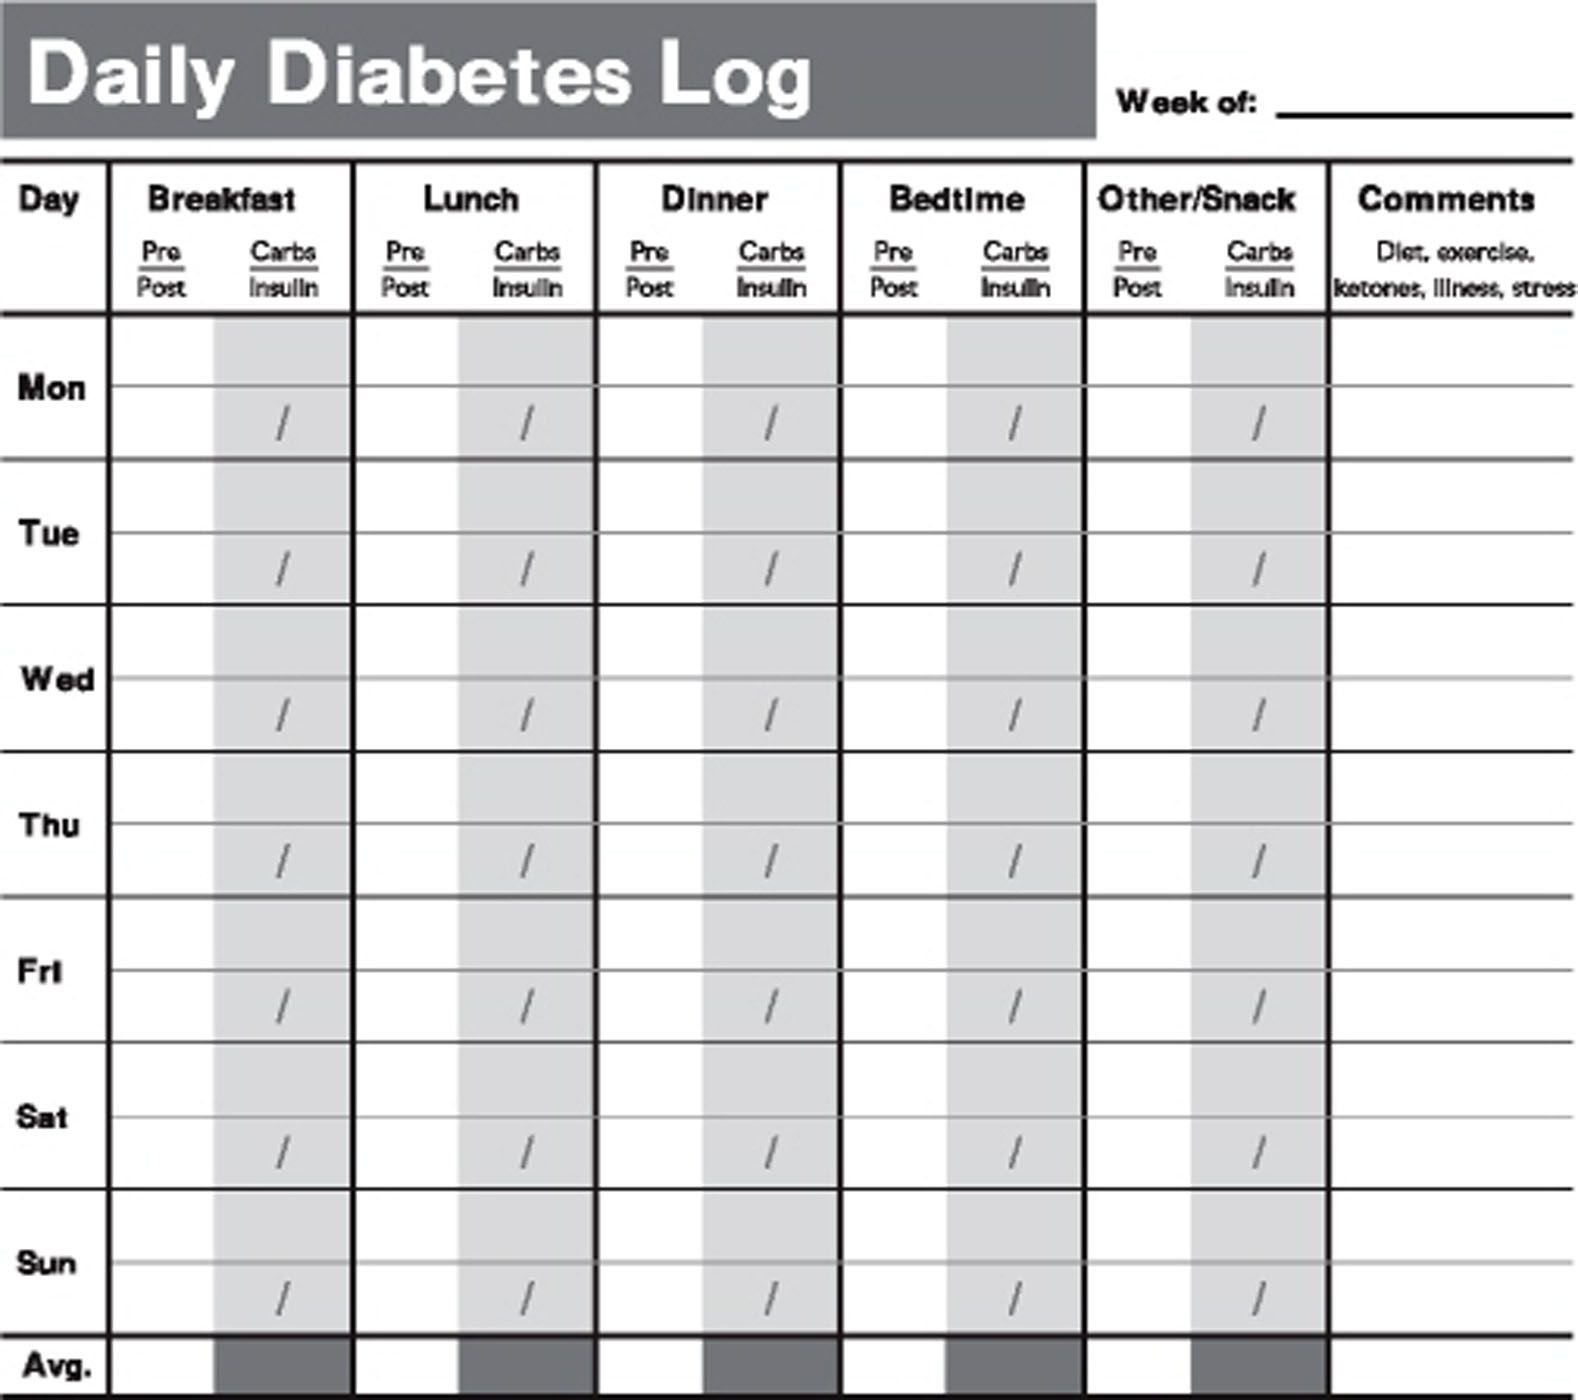 photograph regarding Printable Diabetes Log Book titled Pin upon log e book